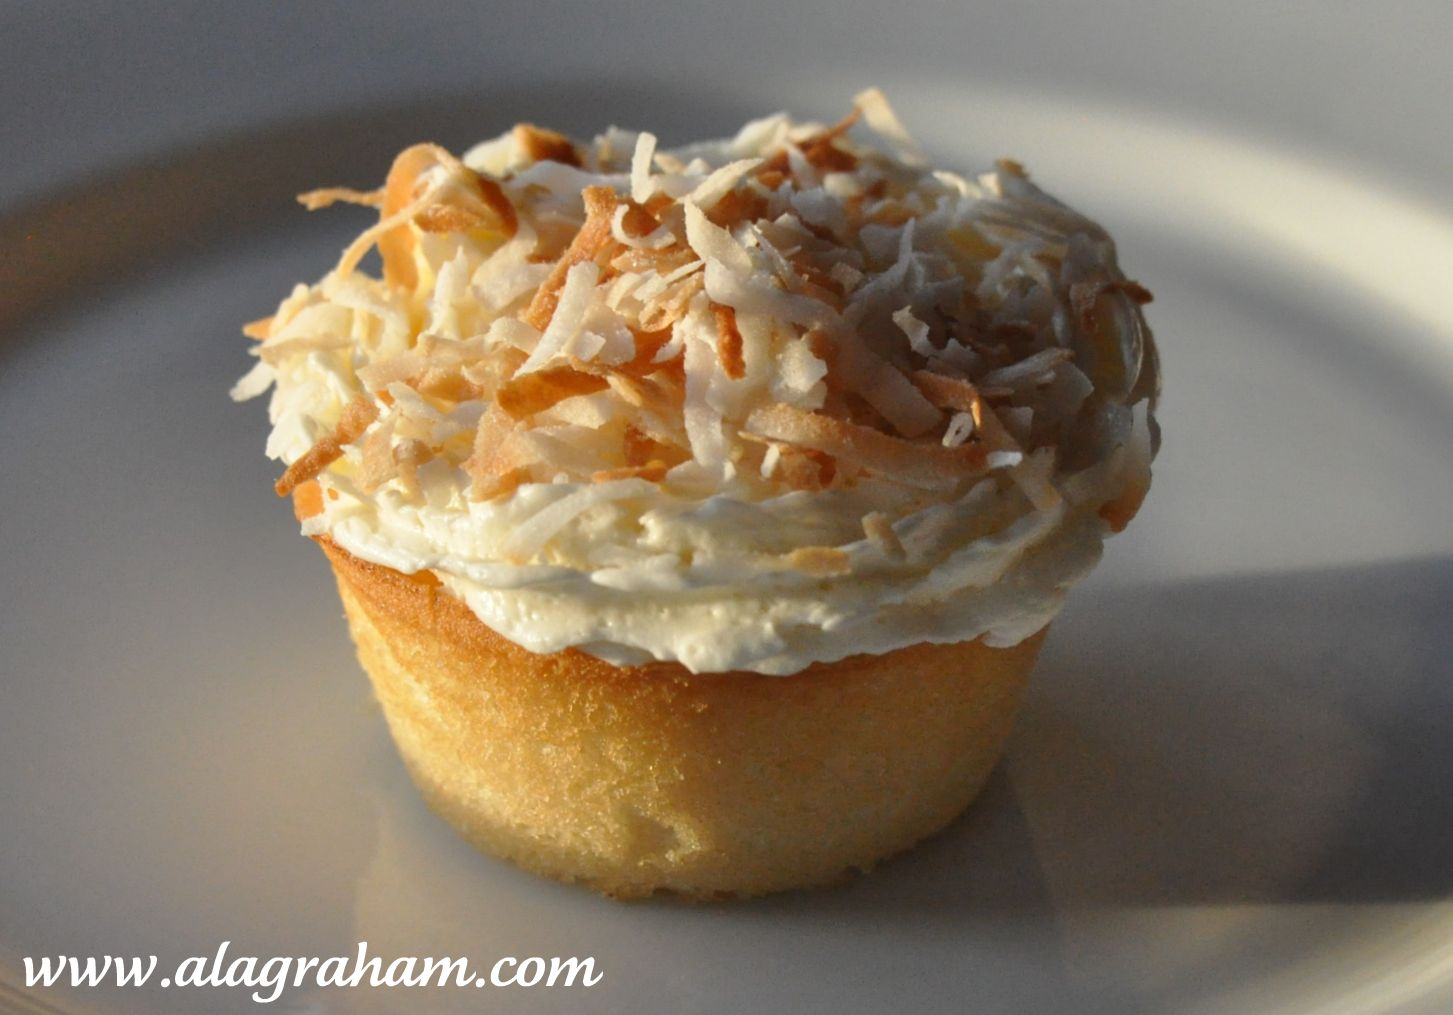 LA GRAHAM: THE BEST COCONUT CAKE